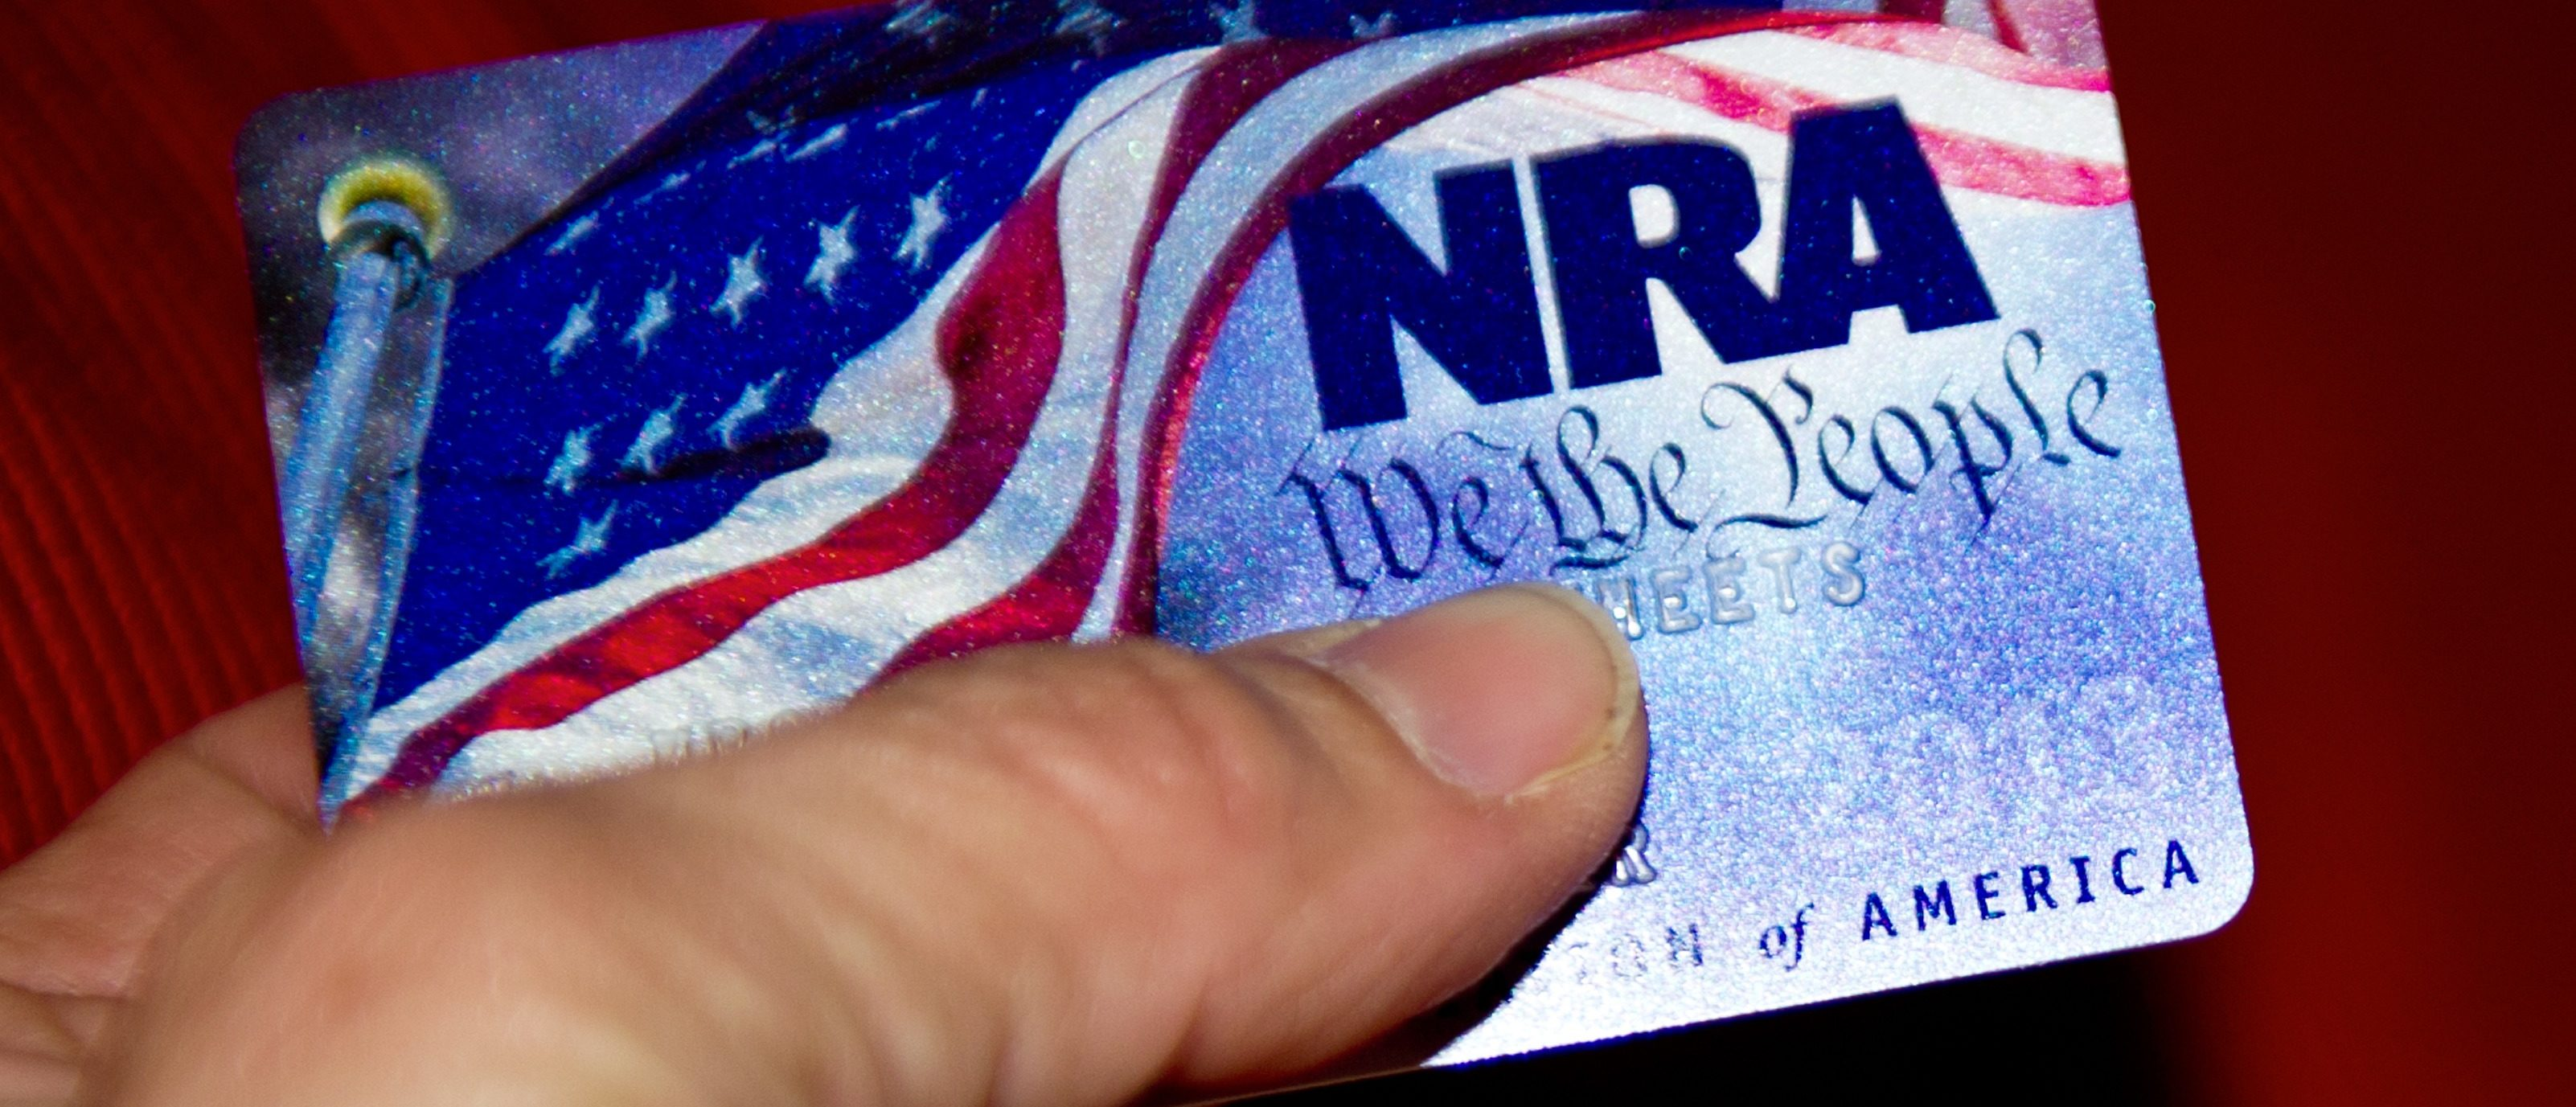 "A membership card for the National Rifle Association (NRA) is seen on January 10, 2013 in Manassas, Virginia. Though the NRA unsurprisingly objected to the gun control measures being considered by US Vice President Joe Biden's gun violence task force, Biden is pressing on with his plan to send the president gun control proposals by January 15. Biden met with the NRA and other gun control opponents January 10 for about an hour and a half. The NRA in a statement following the meeting said, ""We were disappointed with how little this meeting had to do with keeping our children safe and how much it had to do with an agenda to attack the Second Amendment."" ""It is unfortunate that this administration continues to insist on pushing failed solutions to our nation's most pressing problems."" (KAREN BLEIER/AFP/Getty Images)"